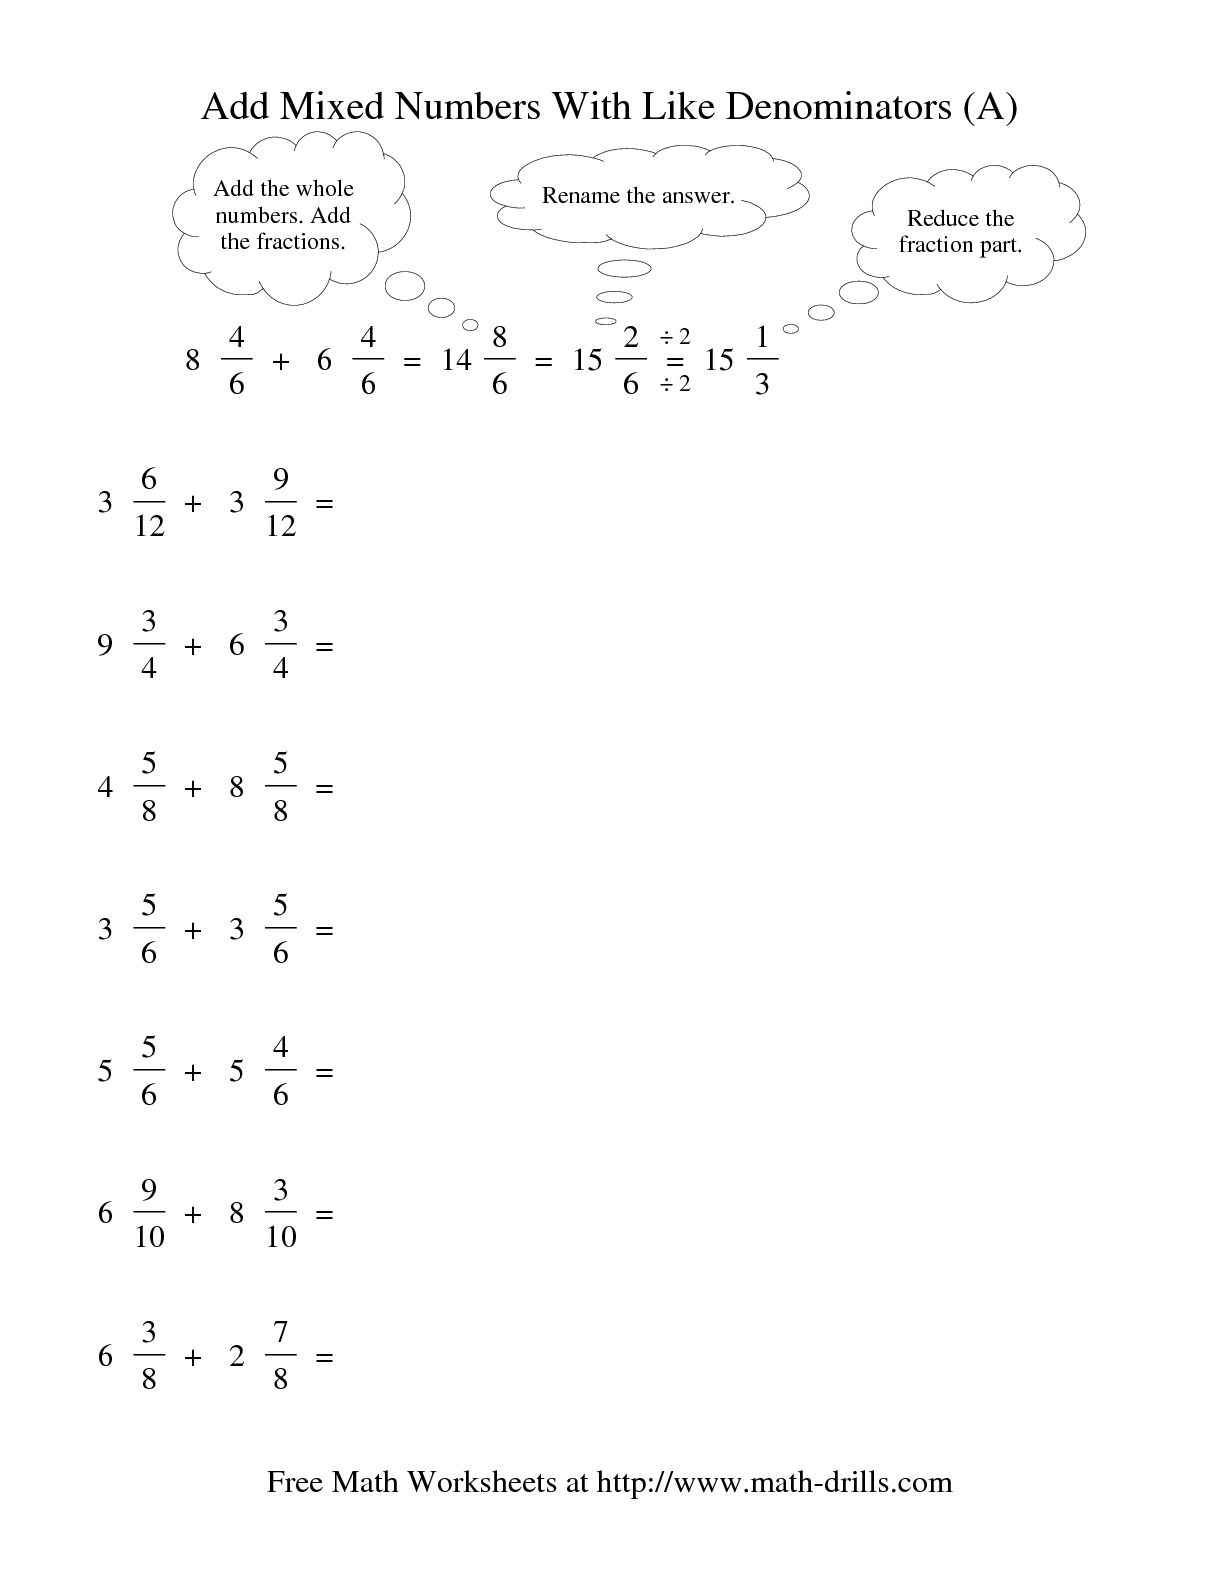 Fractions With Like Denominators Worksheet